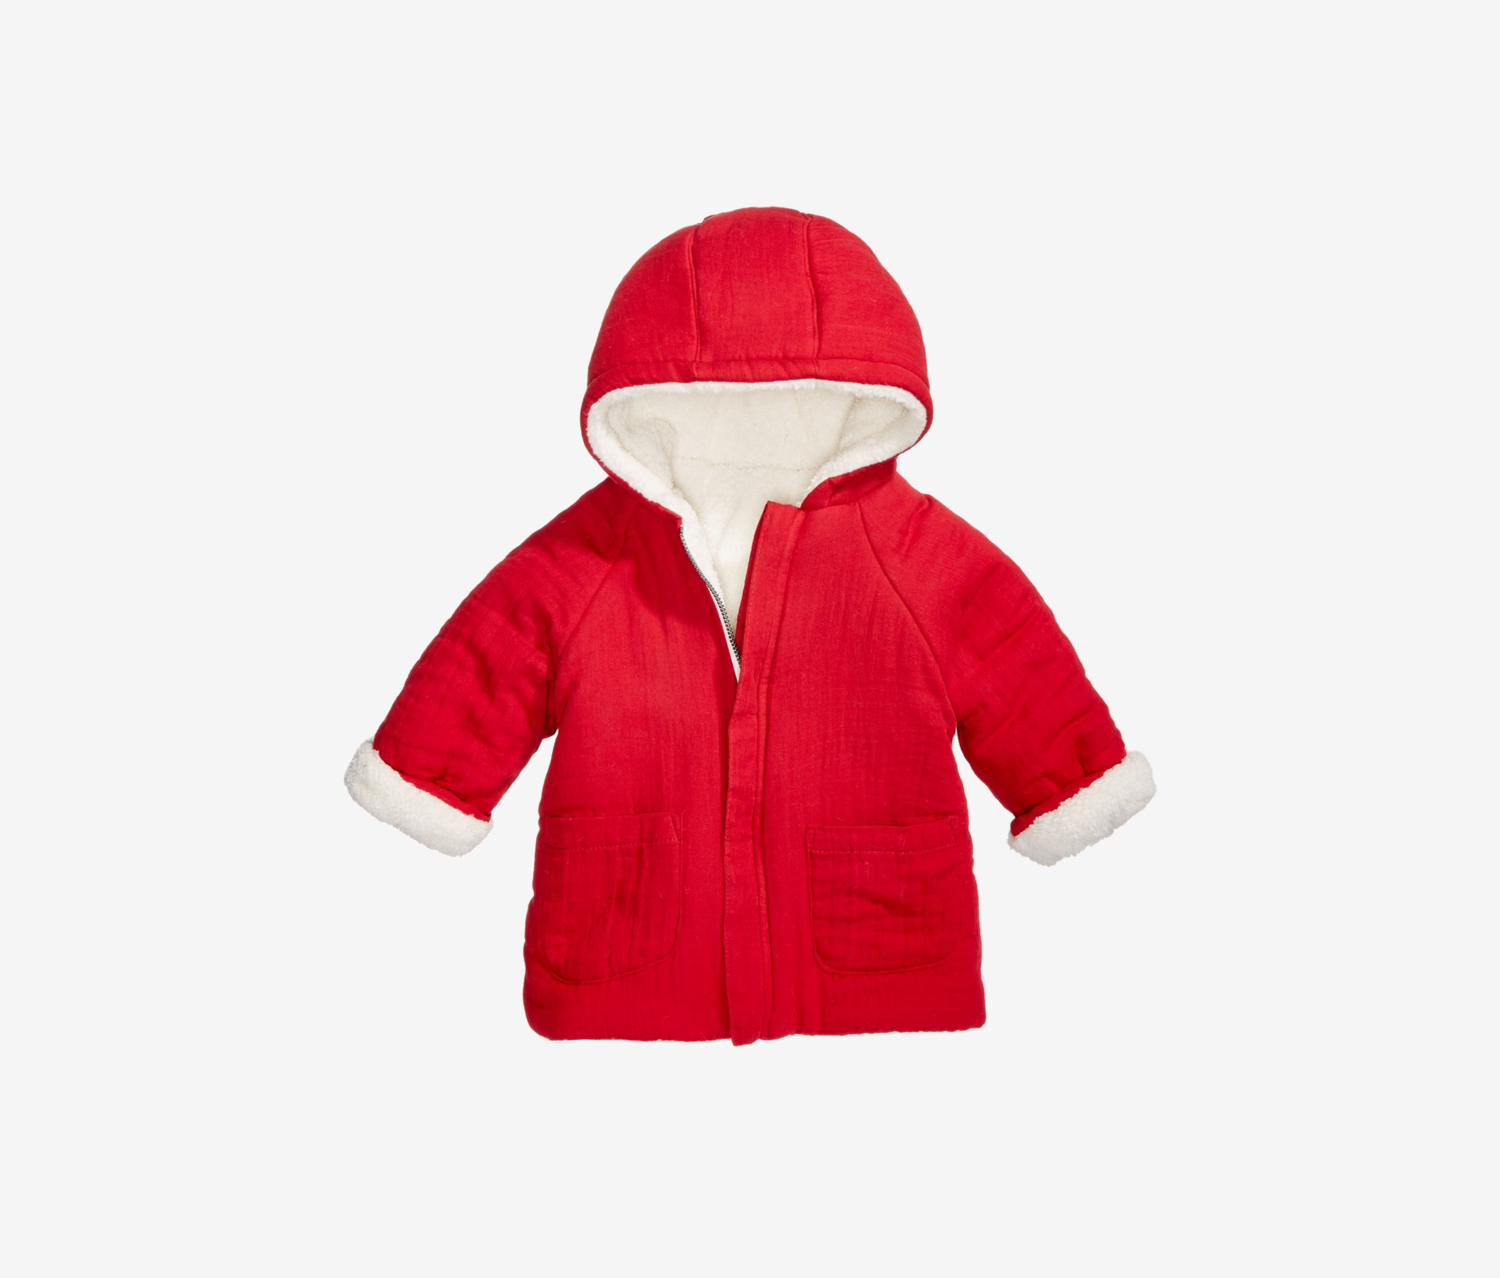 Toddlers Hooded Reversible Sherpa Jacket, Red/White